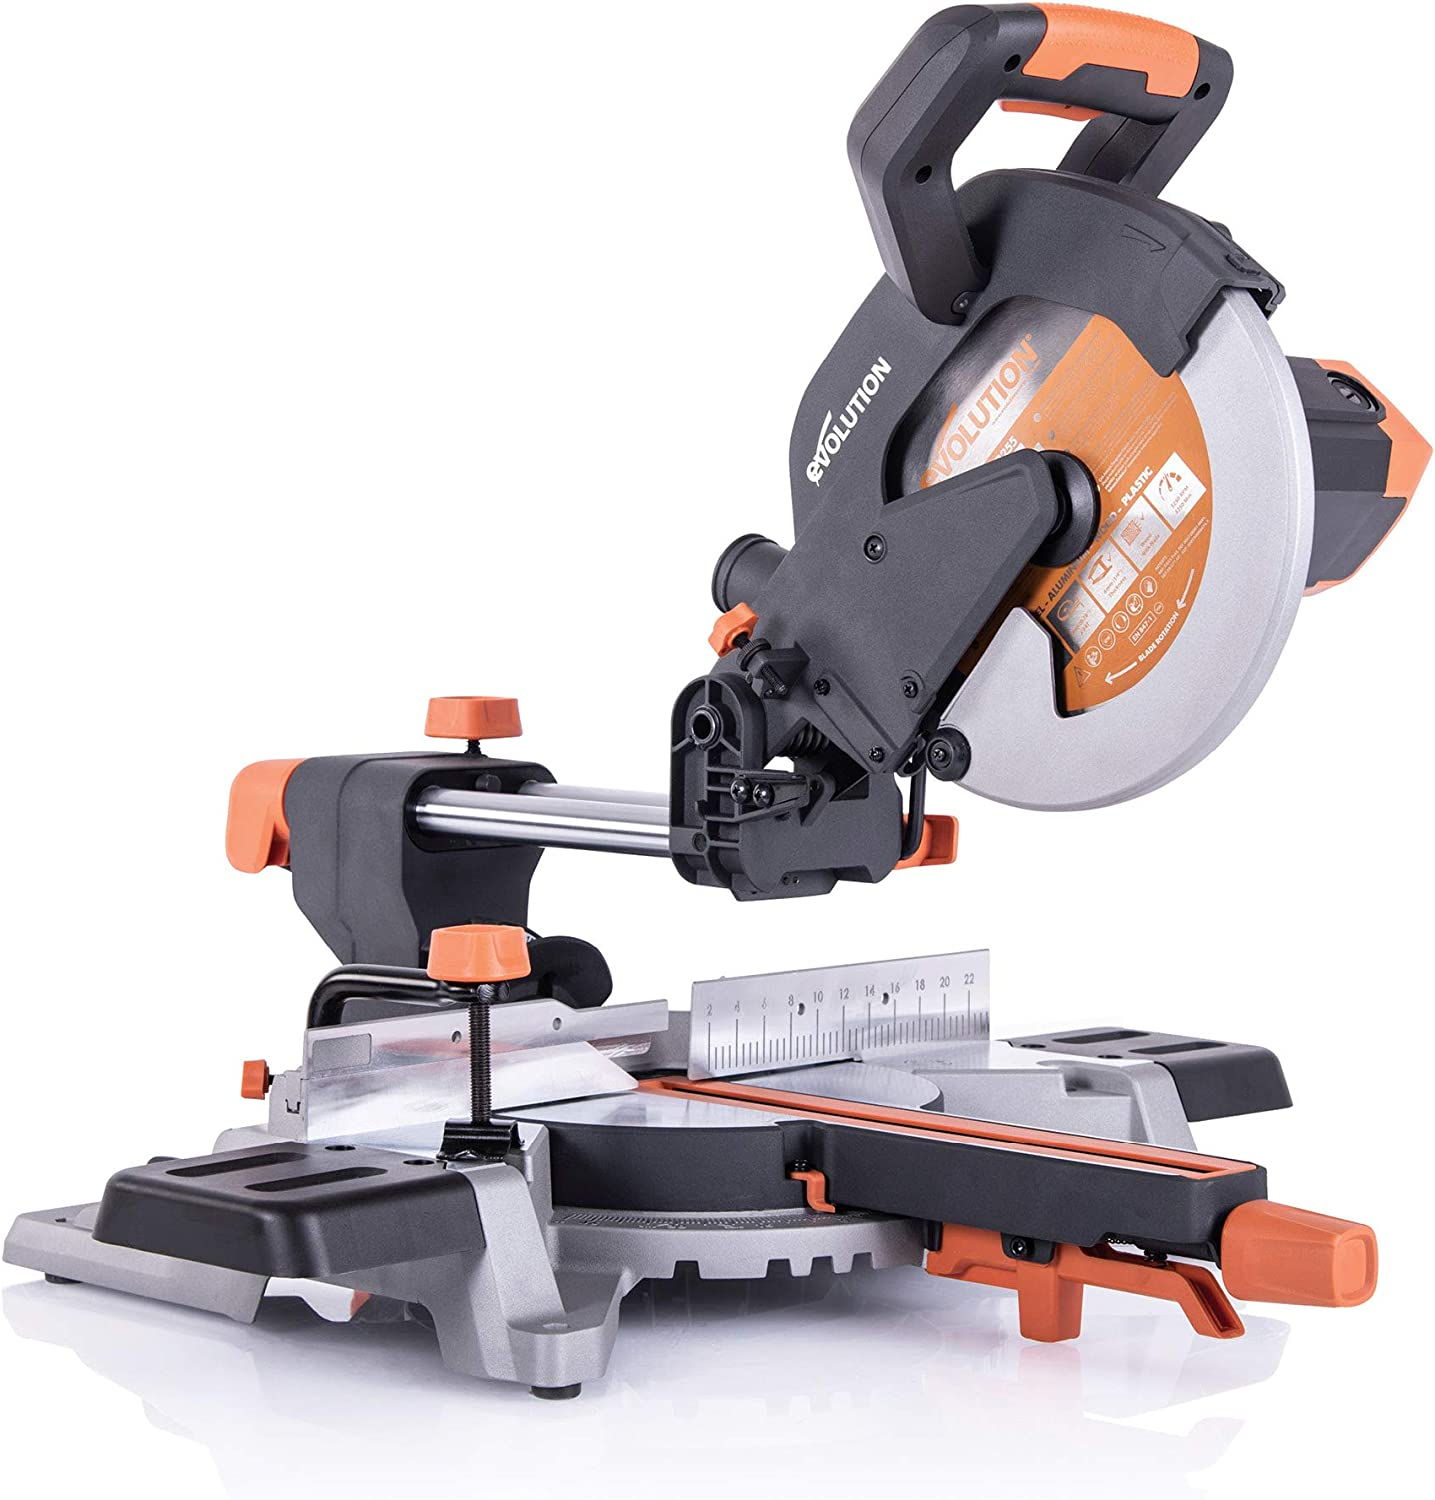 Evolution R255SMSL Compound Sliding Miter Saw